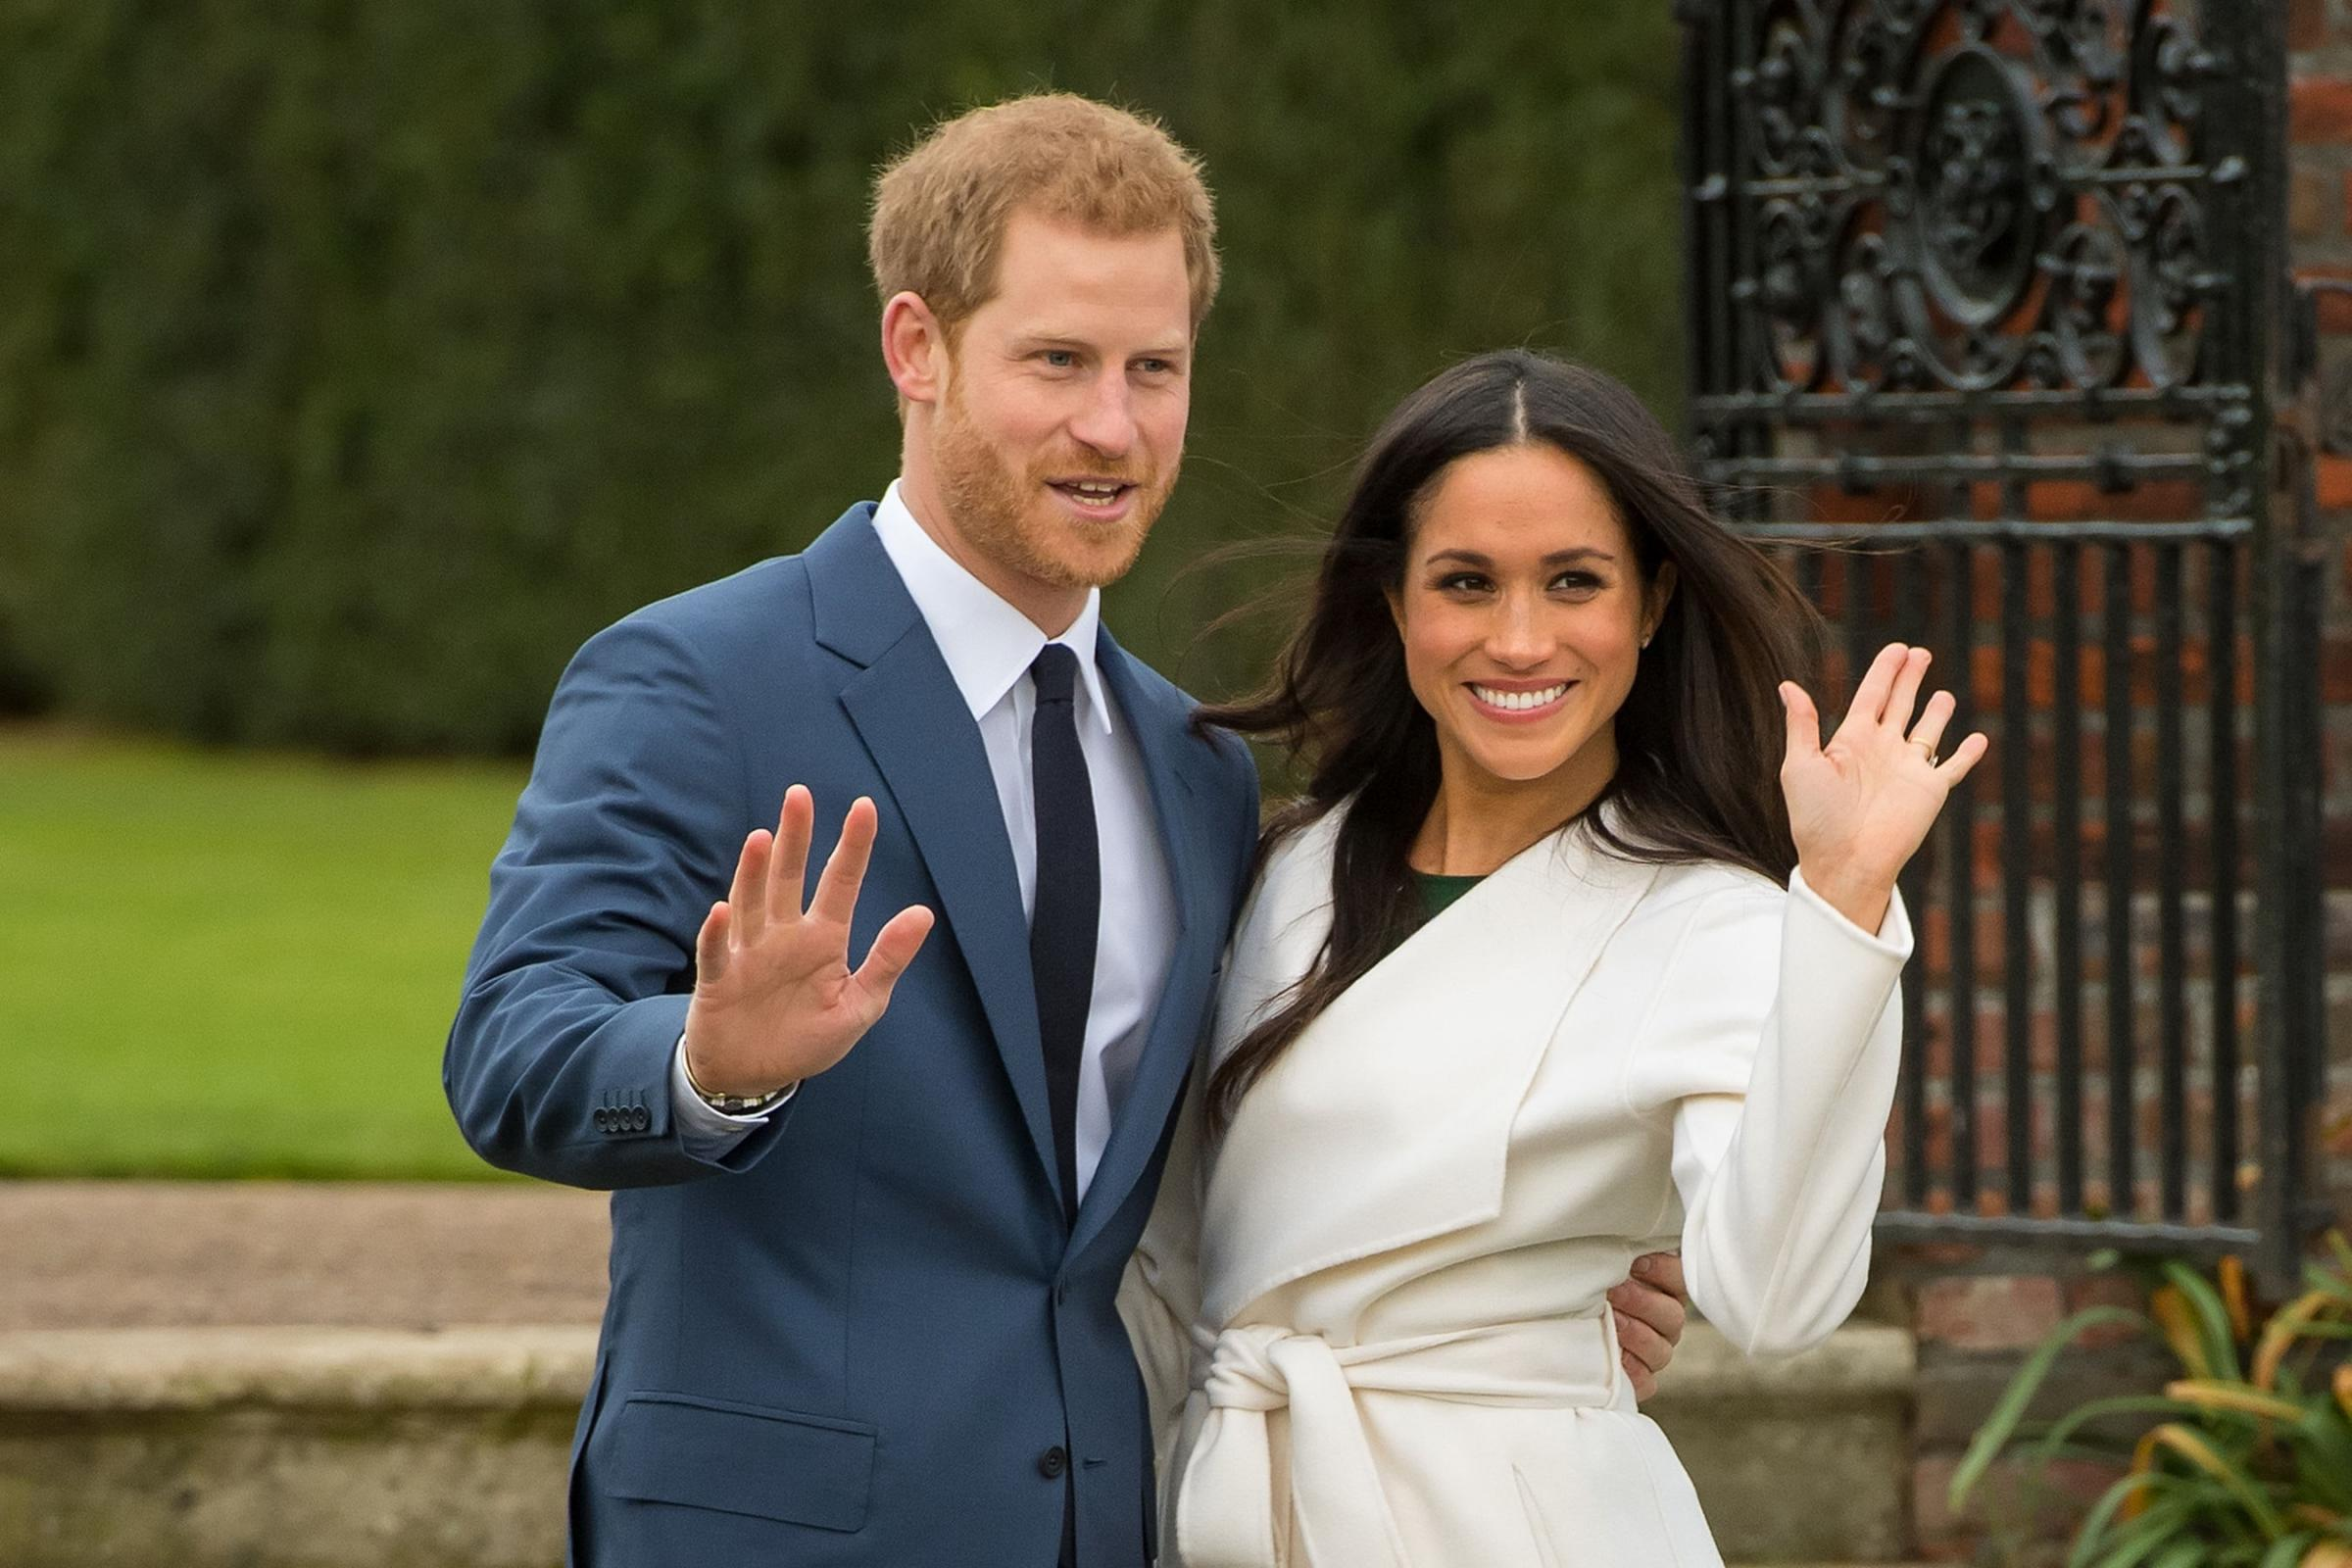 Royal wedding: More details and timings revealed